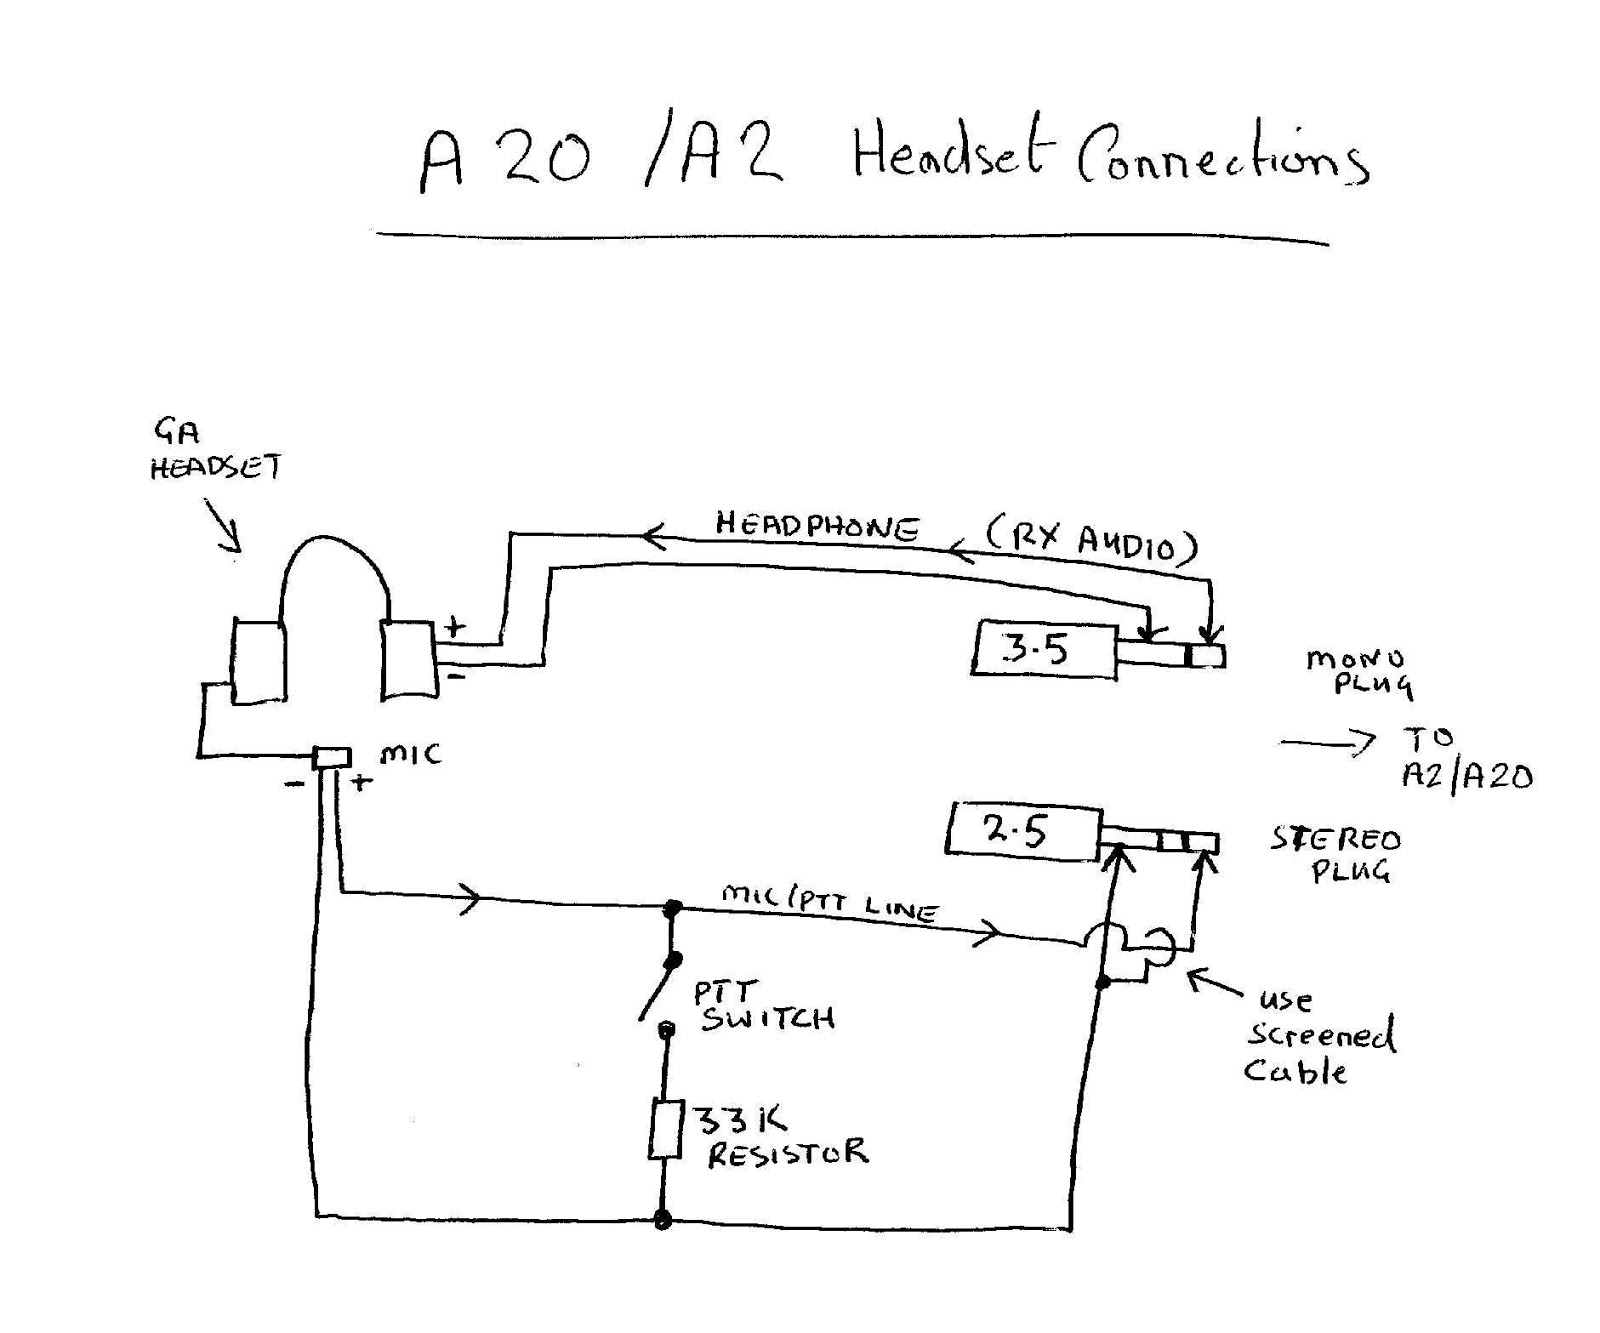 k40 mic wiring diagram - generic wiring harness for an atv for wiring  diagram schematics  wiring diagram schematics